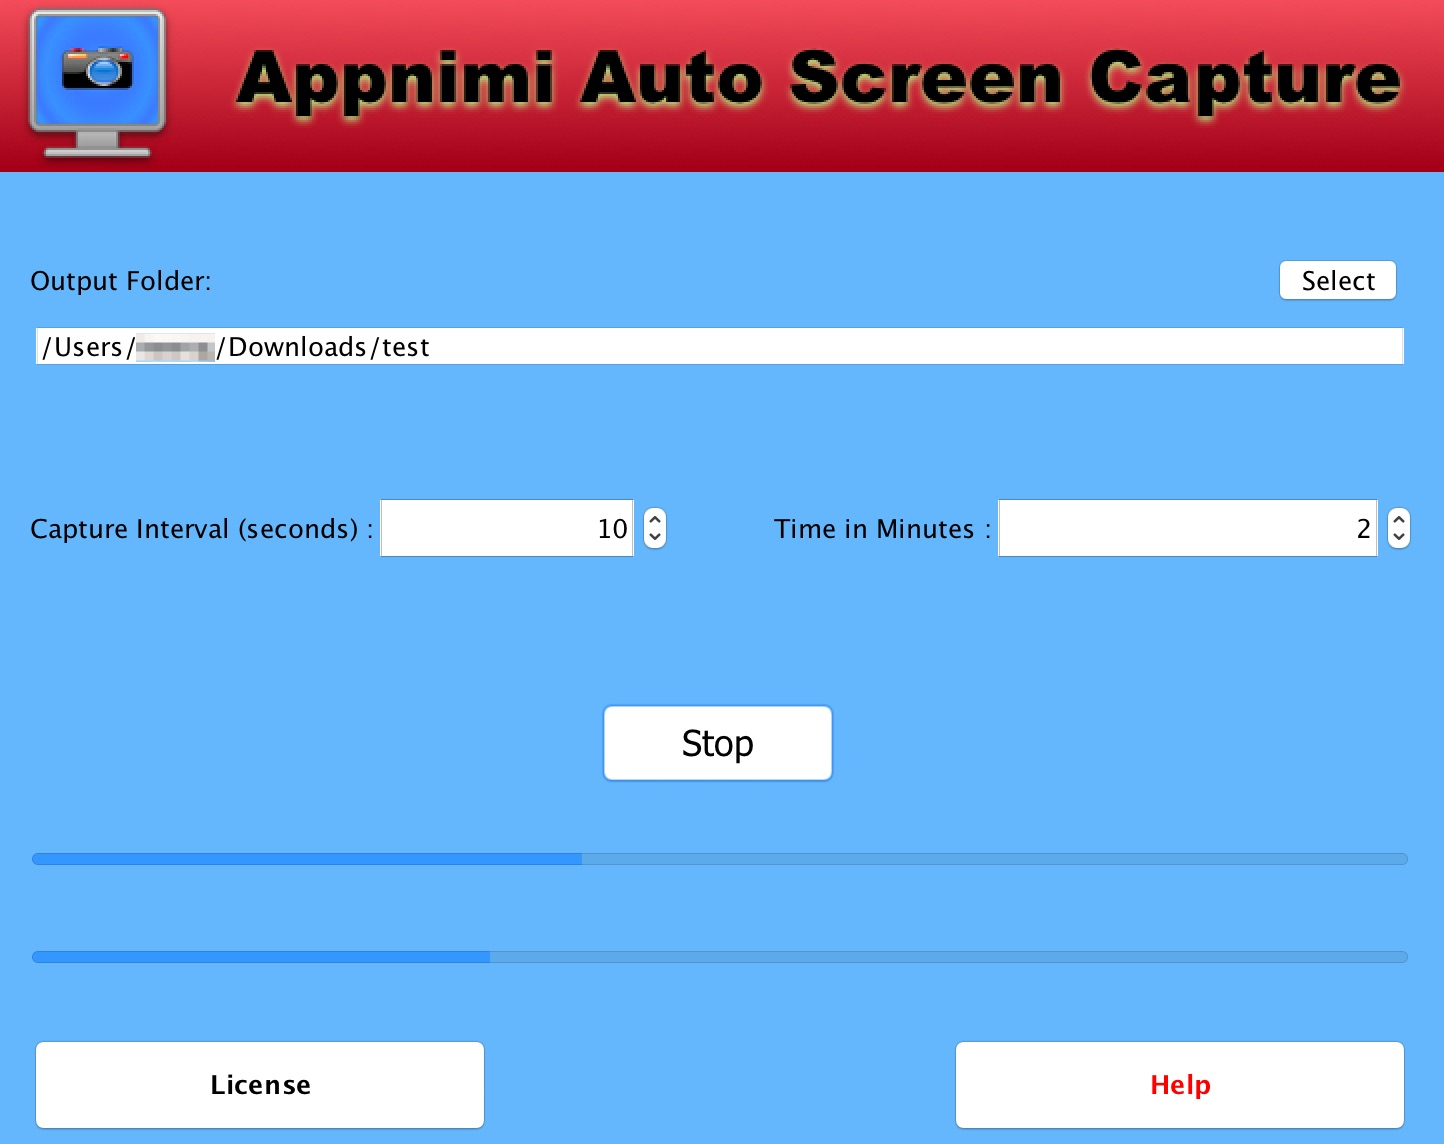 Appnimi Auto Screen Capture Win - Capturing Screenshots